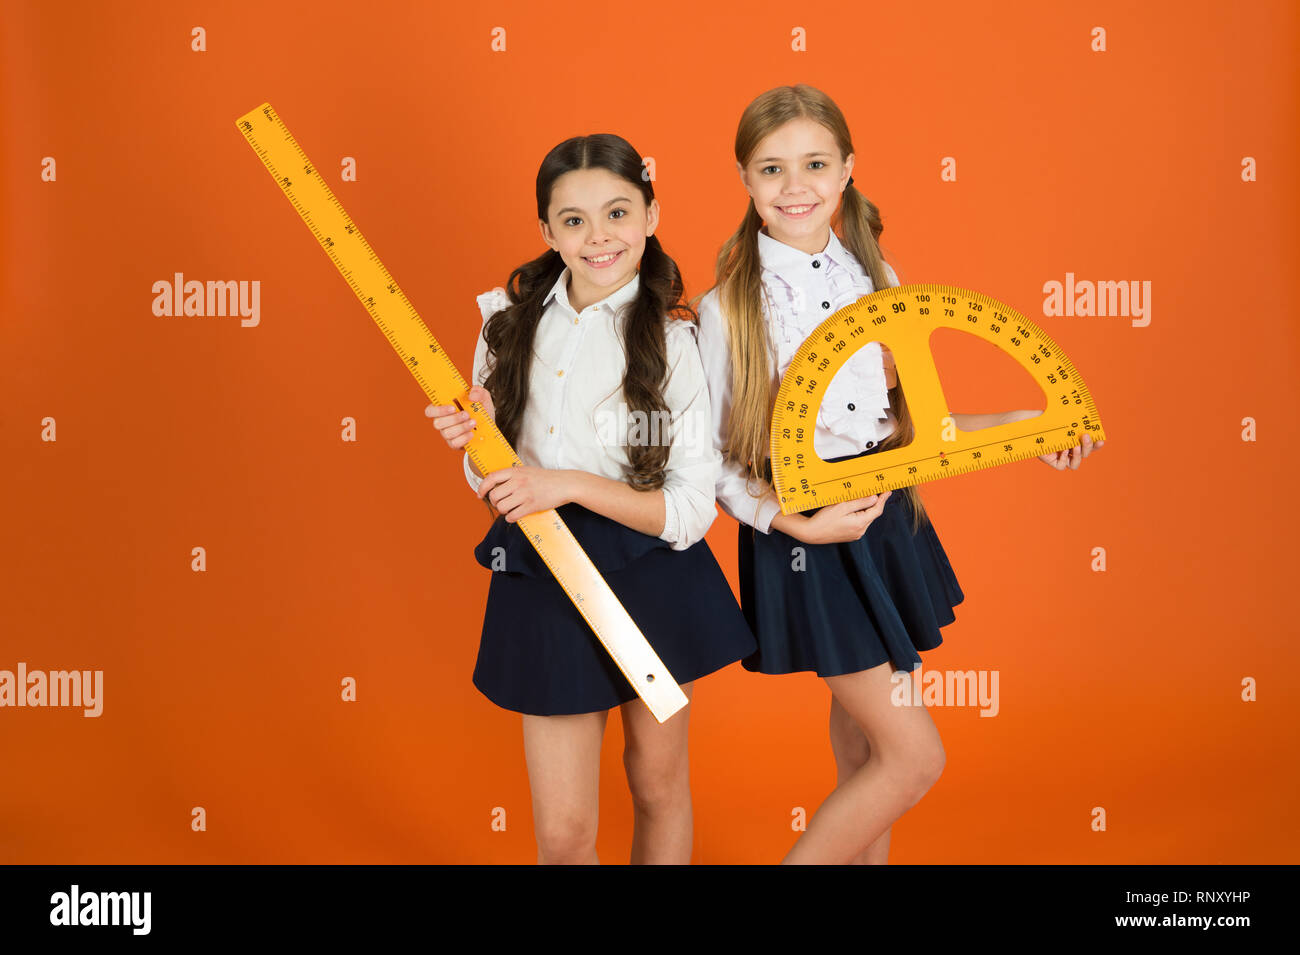 Education and school concept. School students learning geometry. Kids school uniform on orange background. STEM school disciplines. Pupil cute girls with big rulers. Geometry favorite subject. - Stock Image